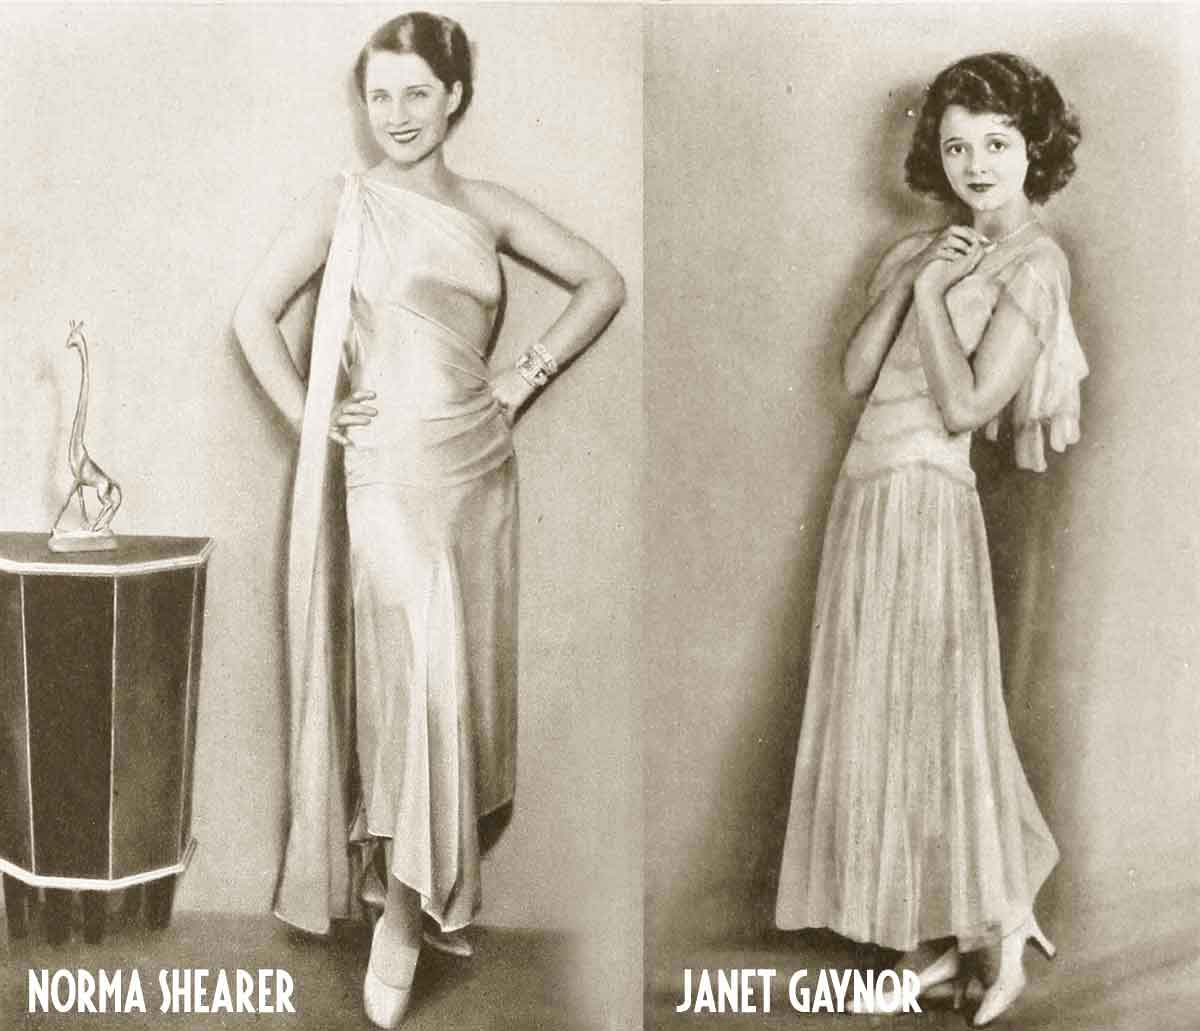 1930s-Hollywood-Fashion---Norma-Shearer-and-Janet-Gaynor